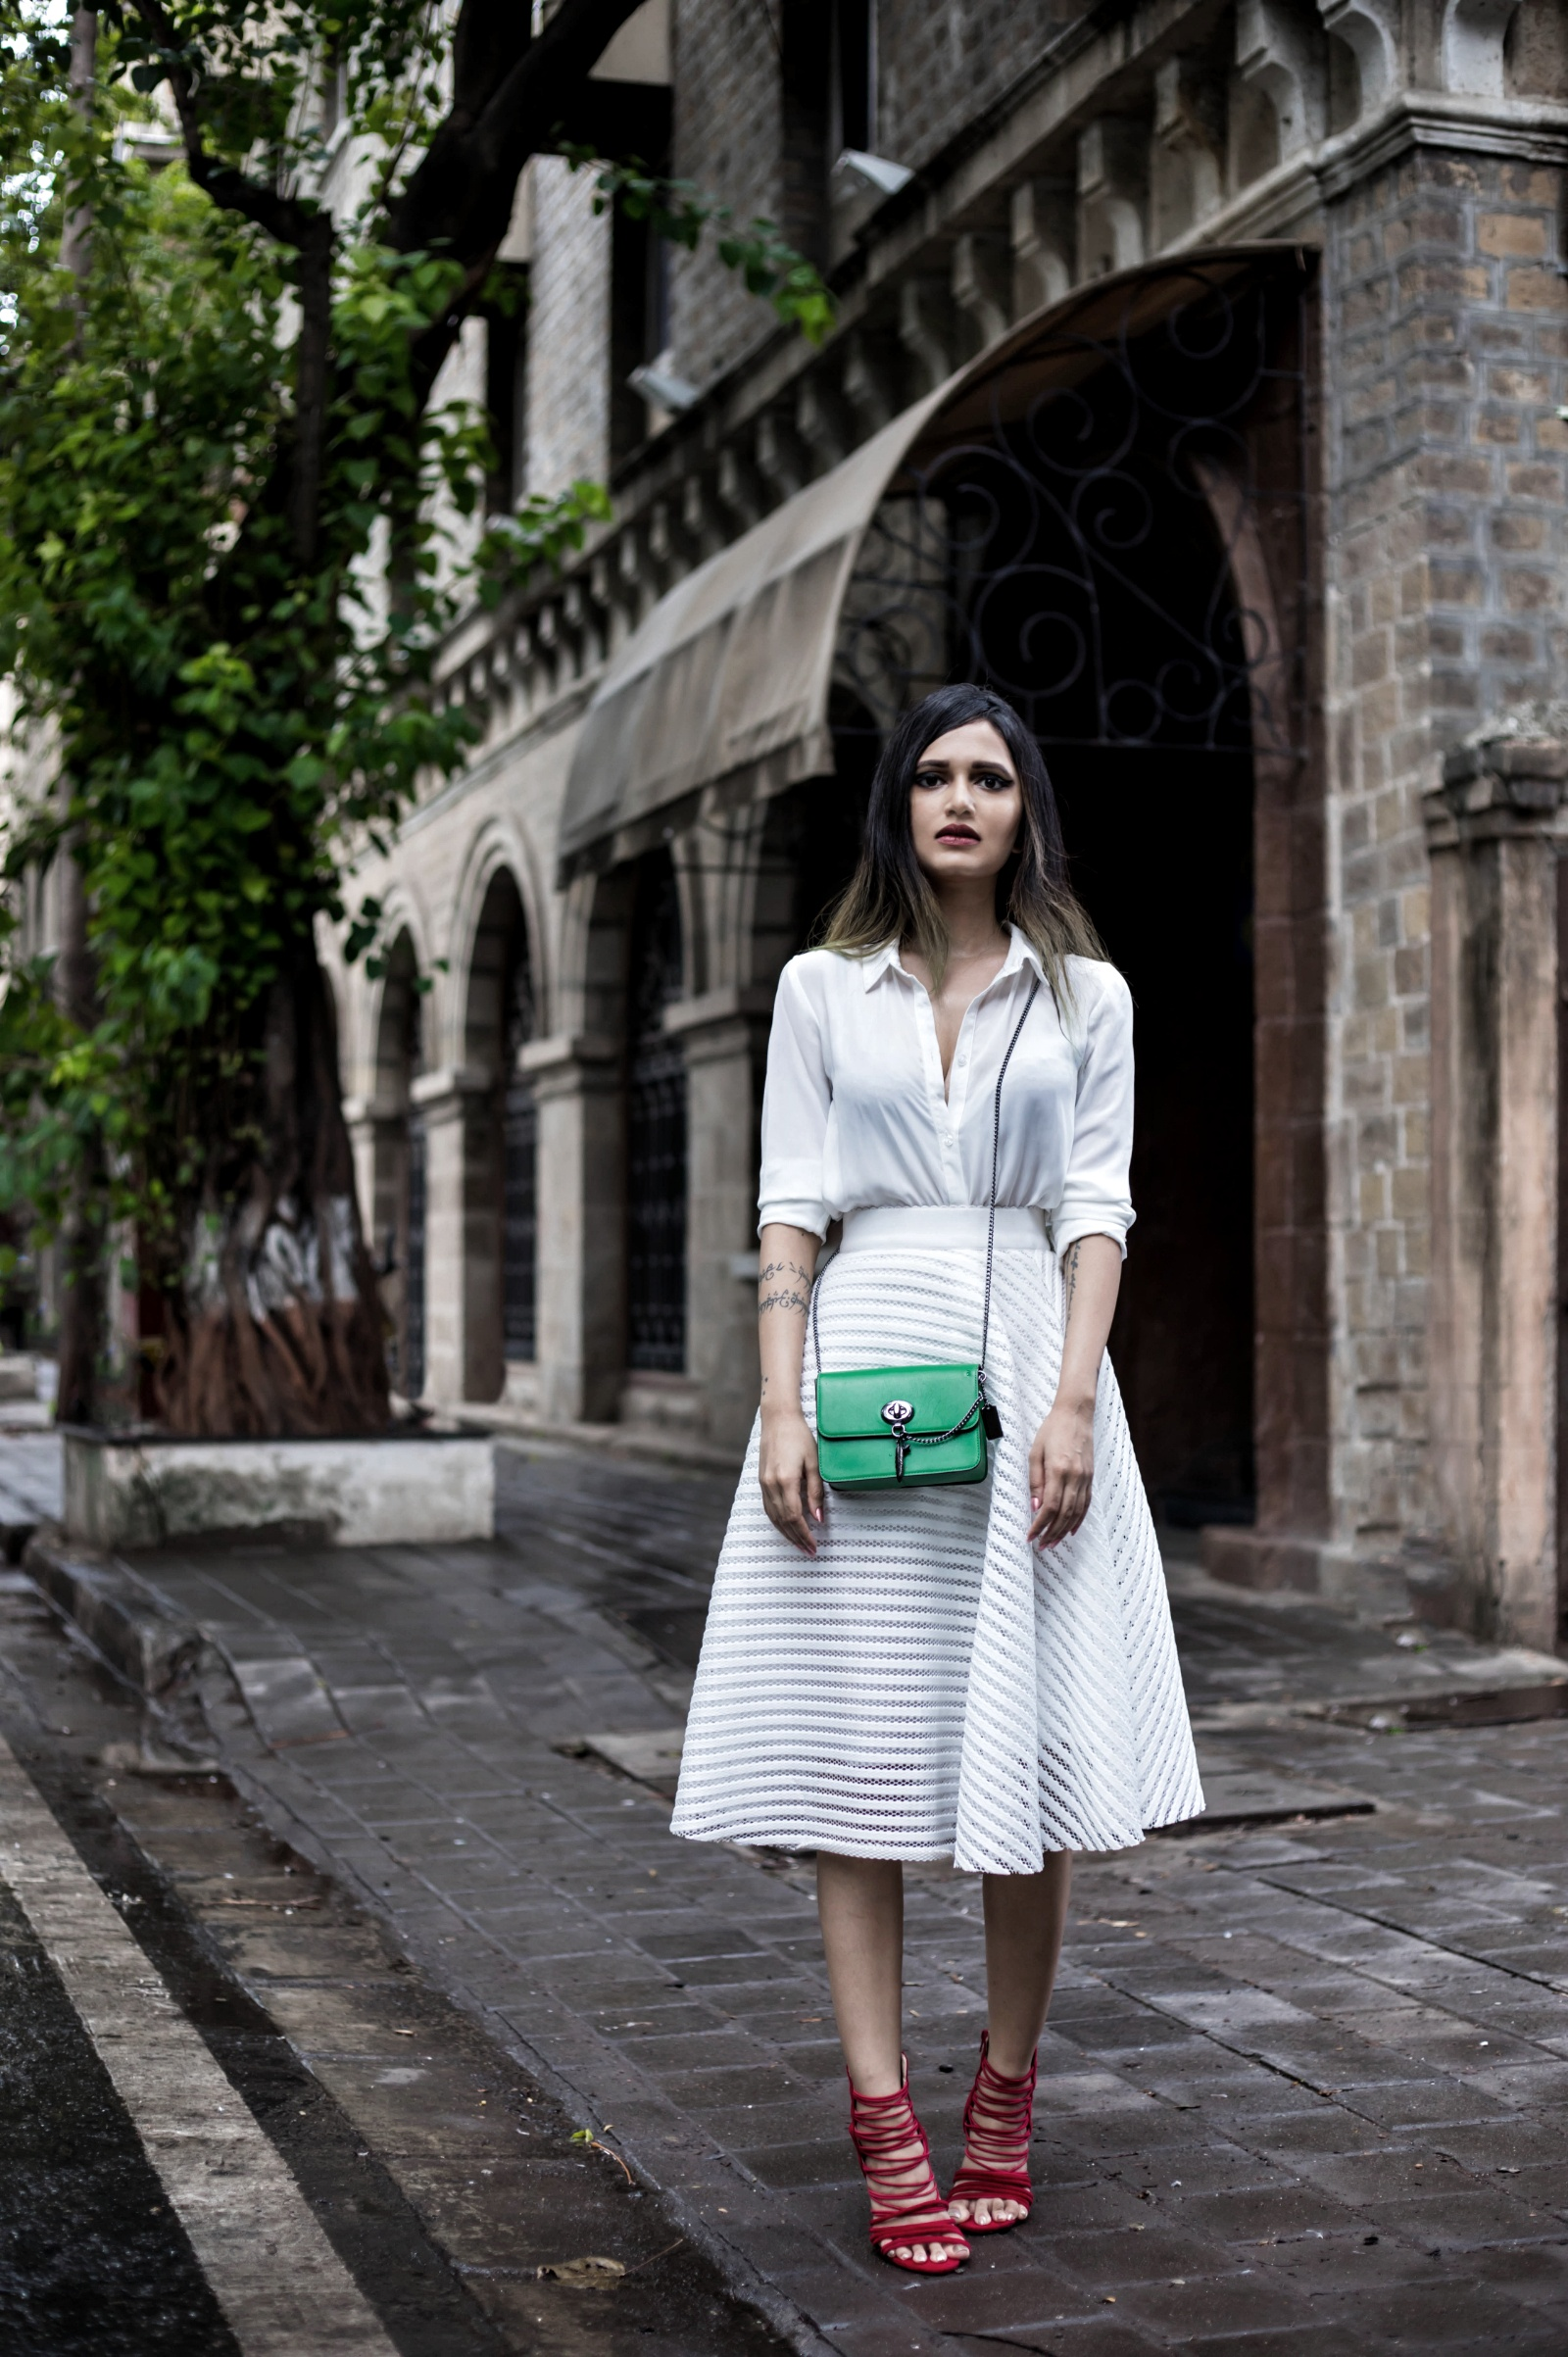 the-chic-armoire-by-nidhi-kunder-coach-1